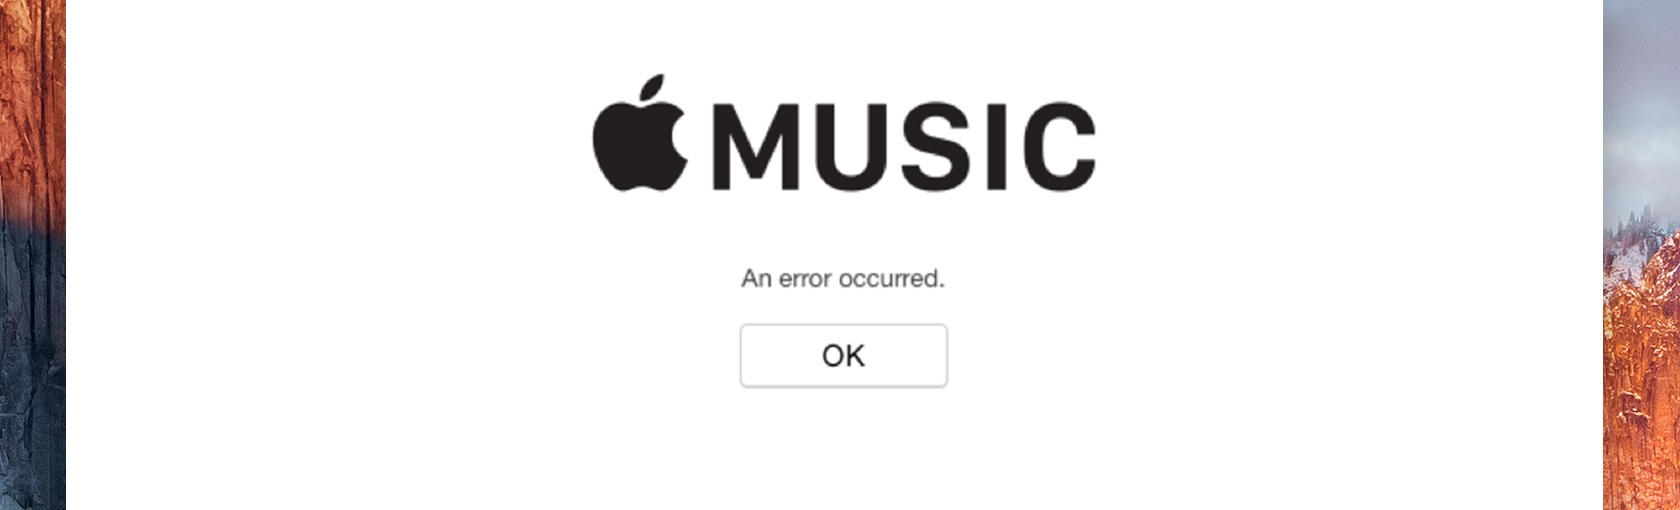 A simple, elegant, completely useless iTunes error message captured by Allen Pike